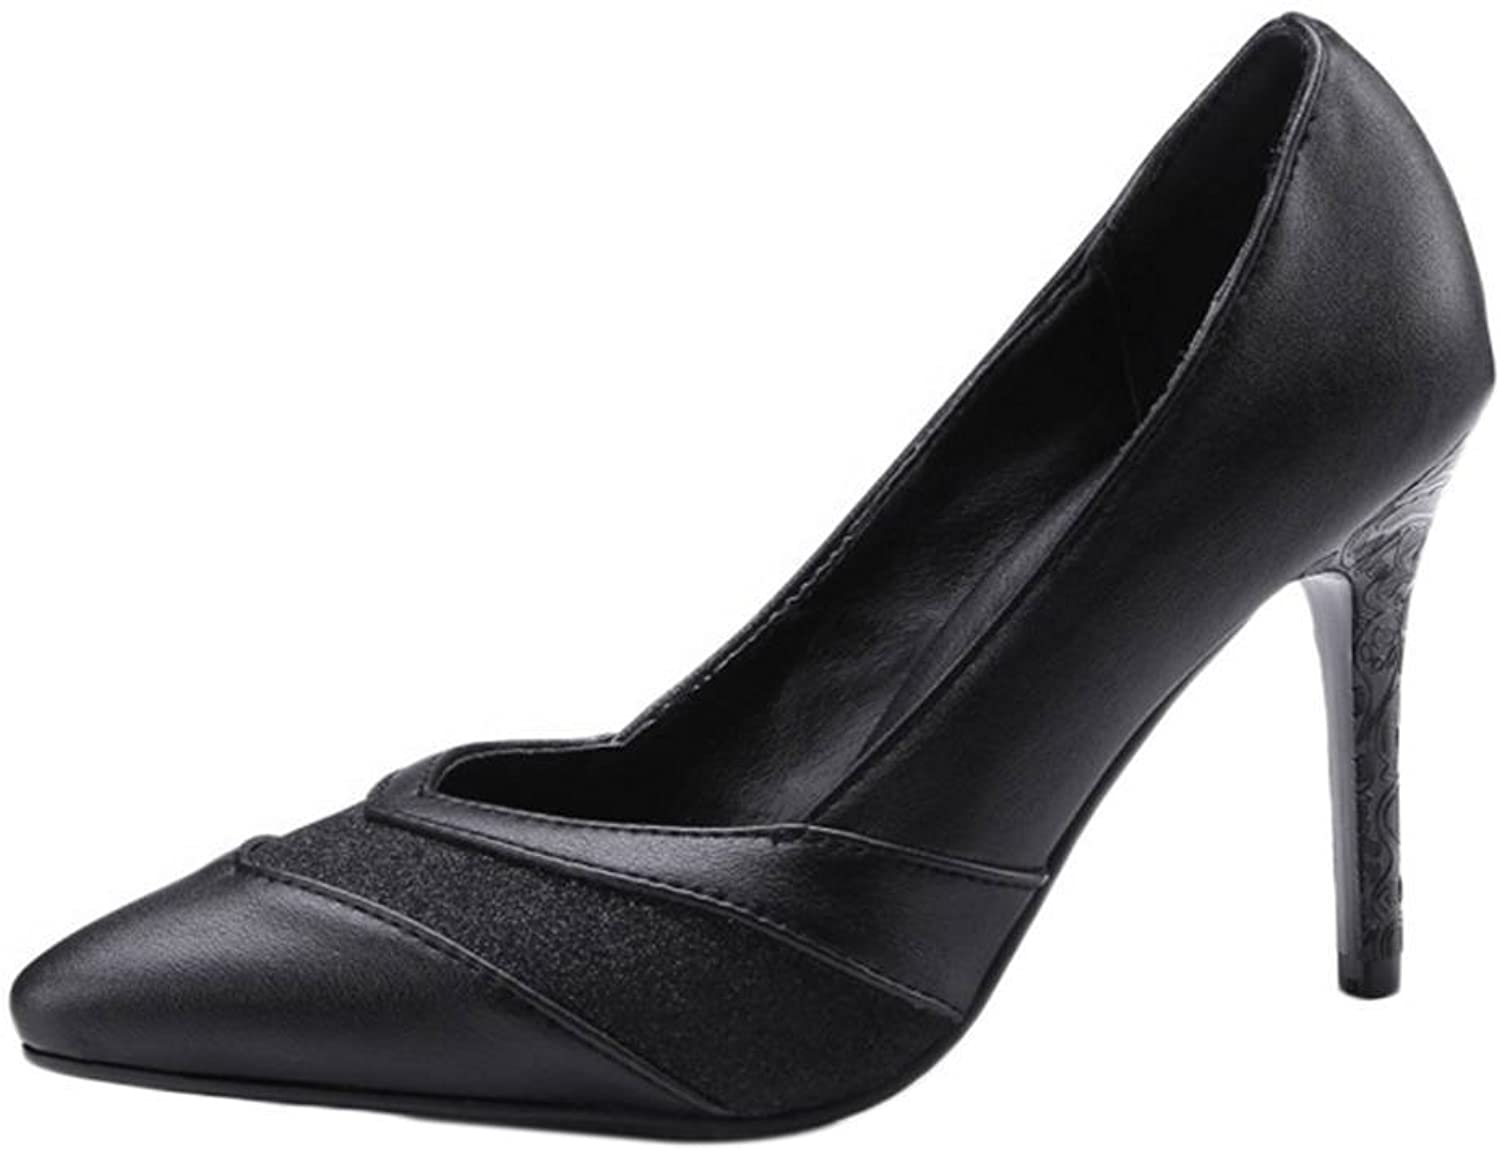 Smilice Fashion Pumps with Stiletto and Pointed Toe Women Working shoes with Large Size Available